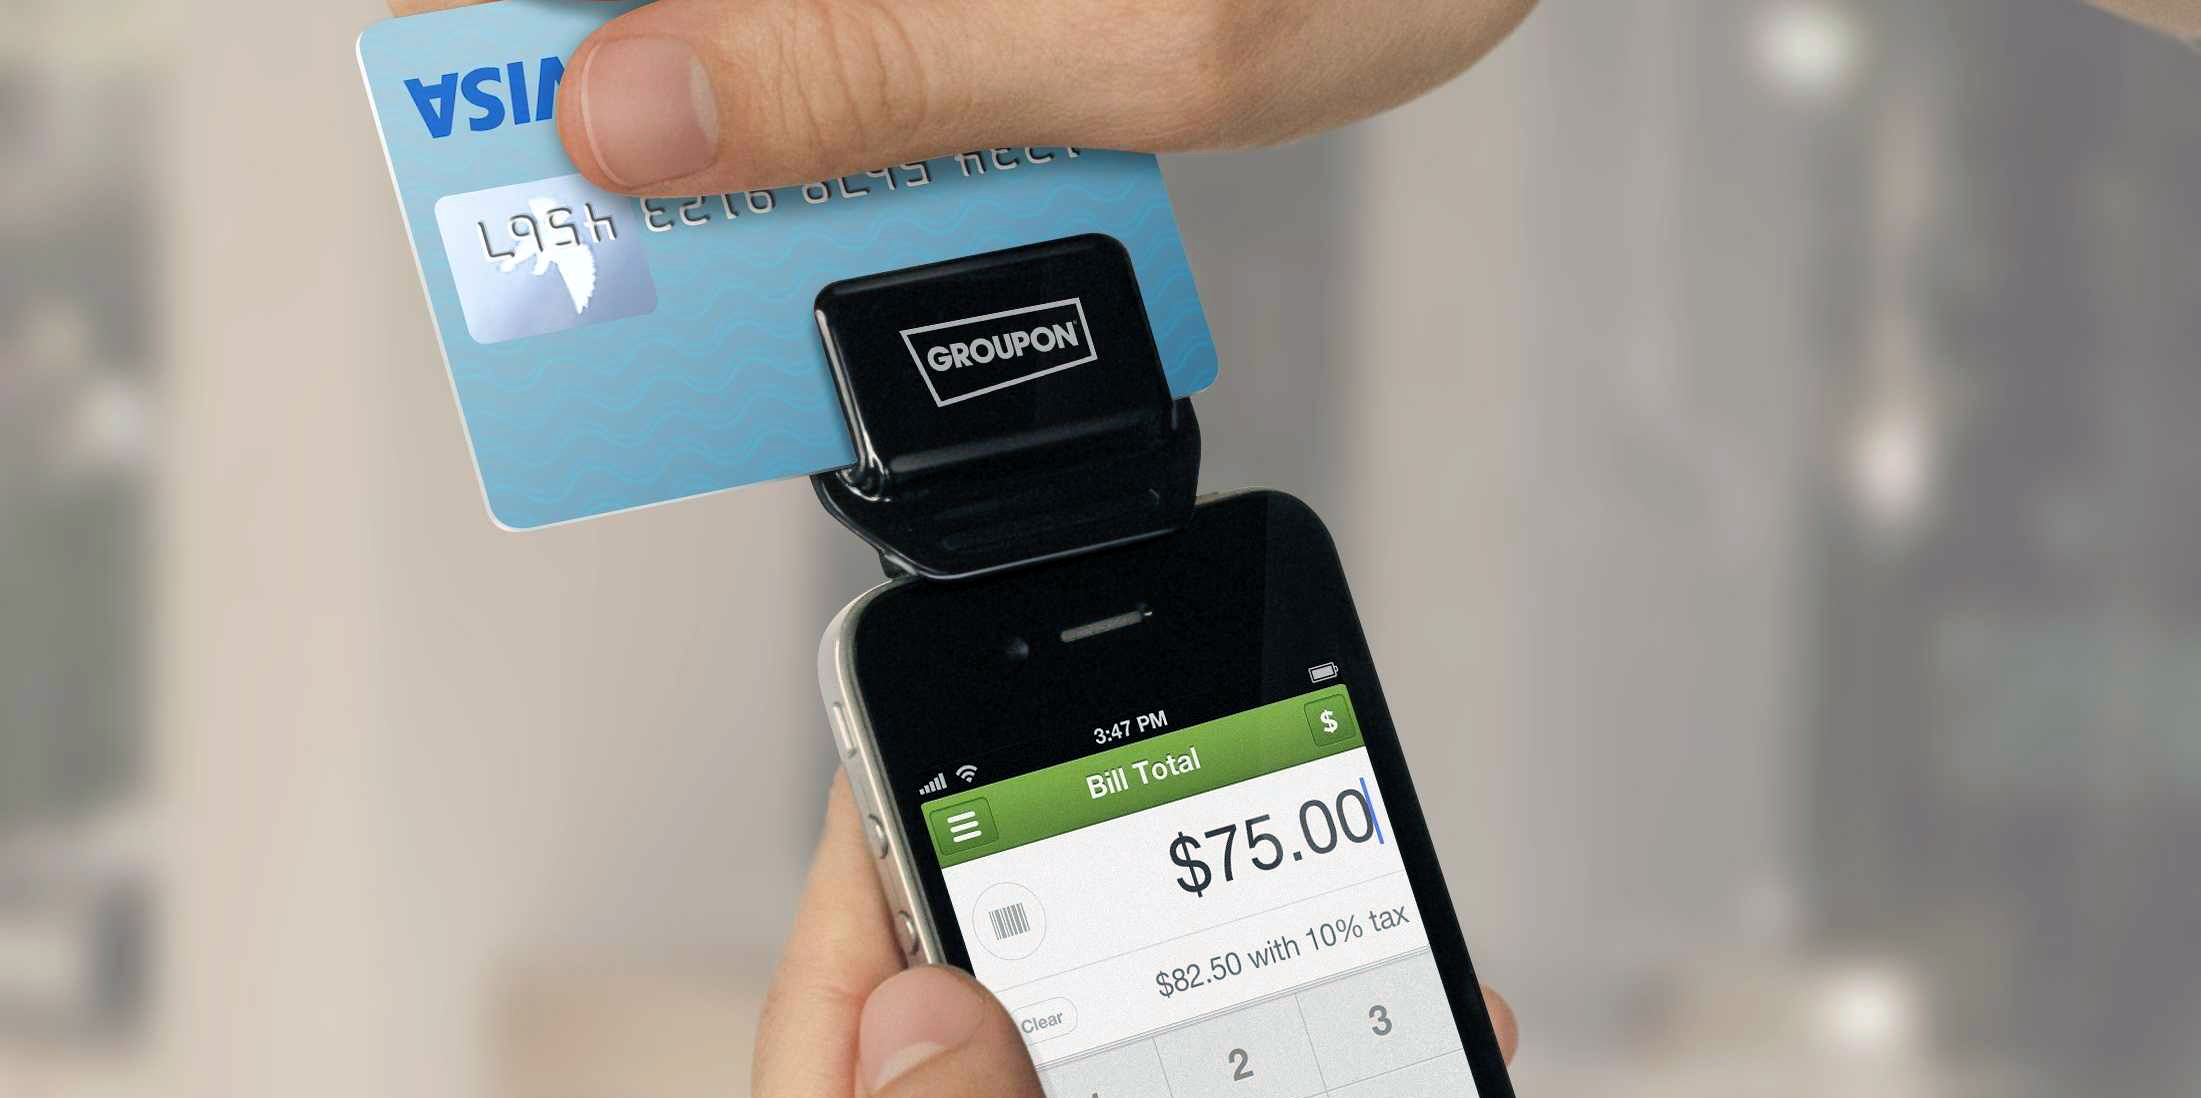 Campground Technology mobile payment